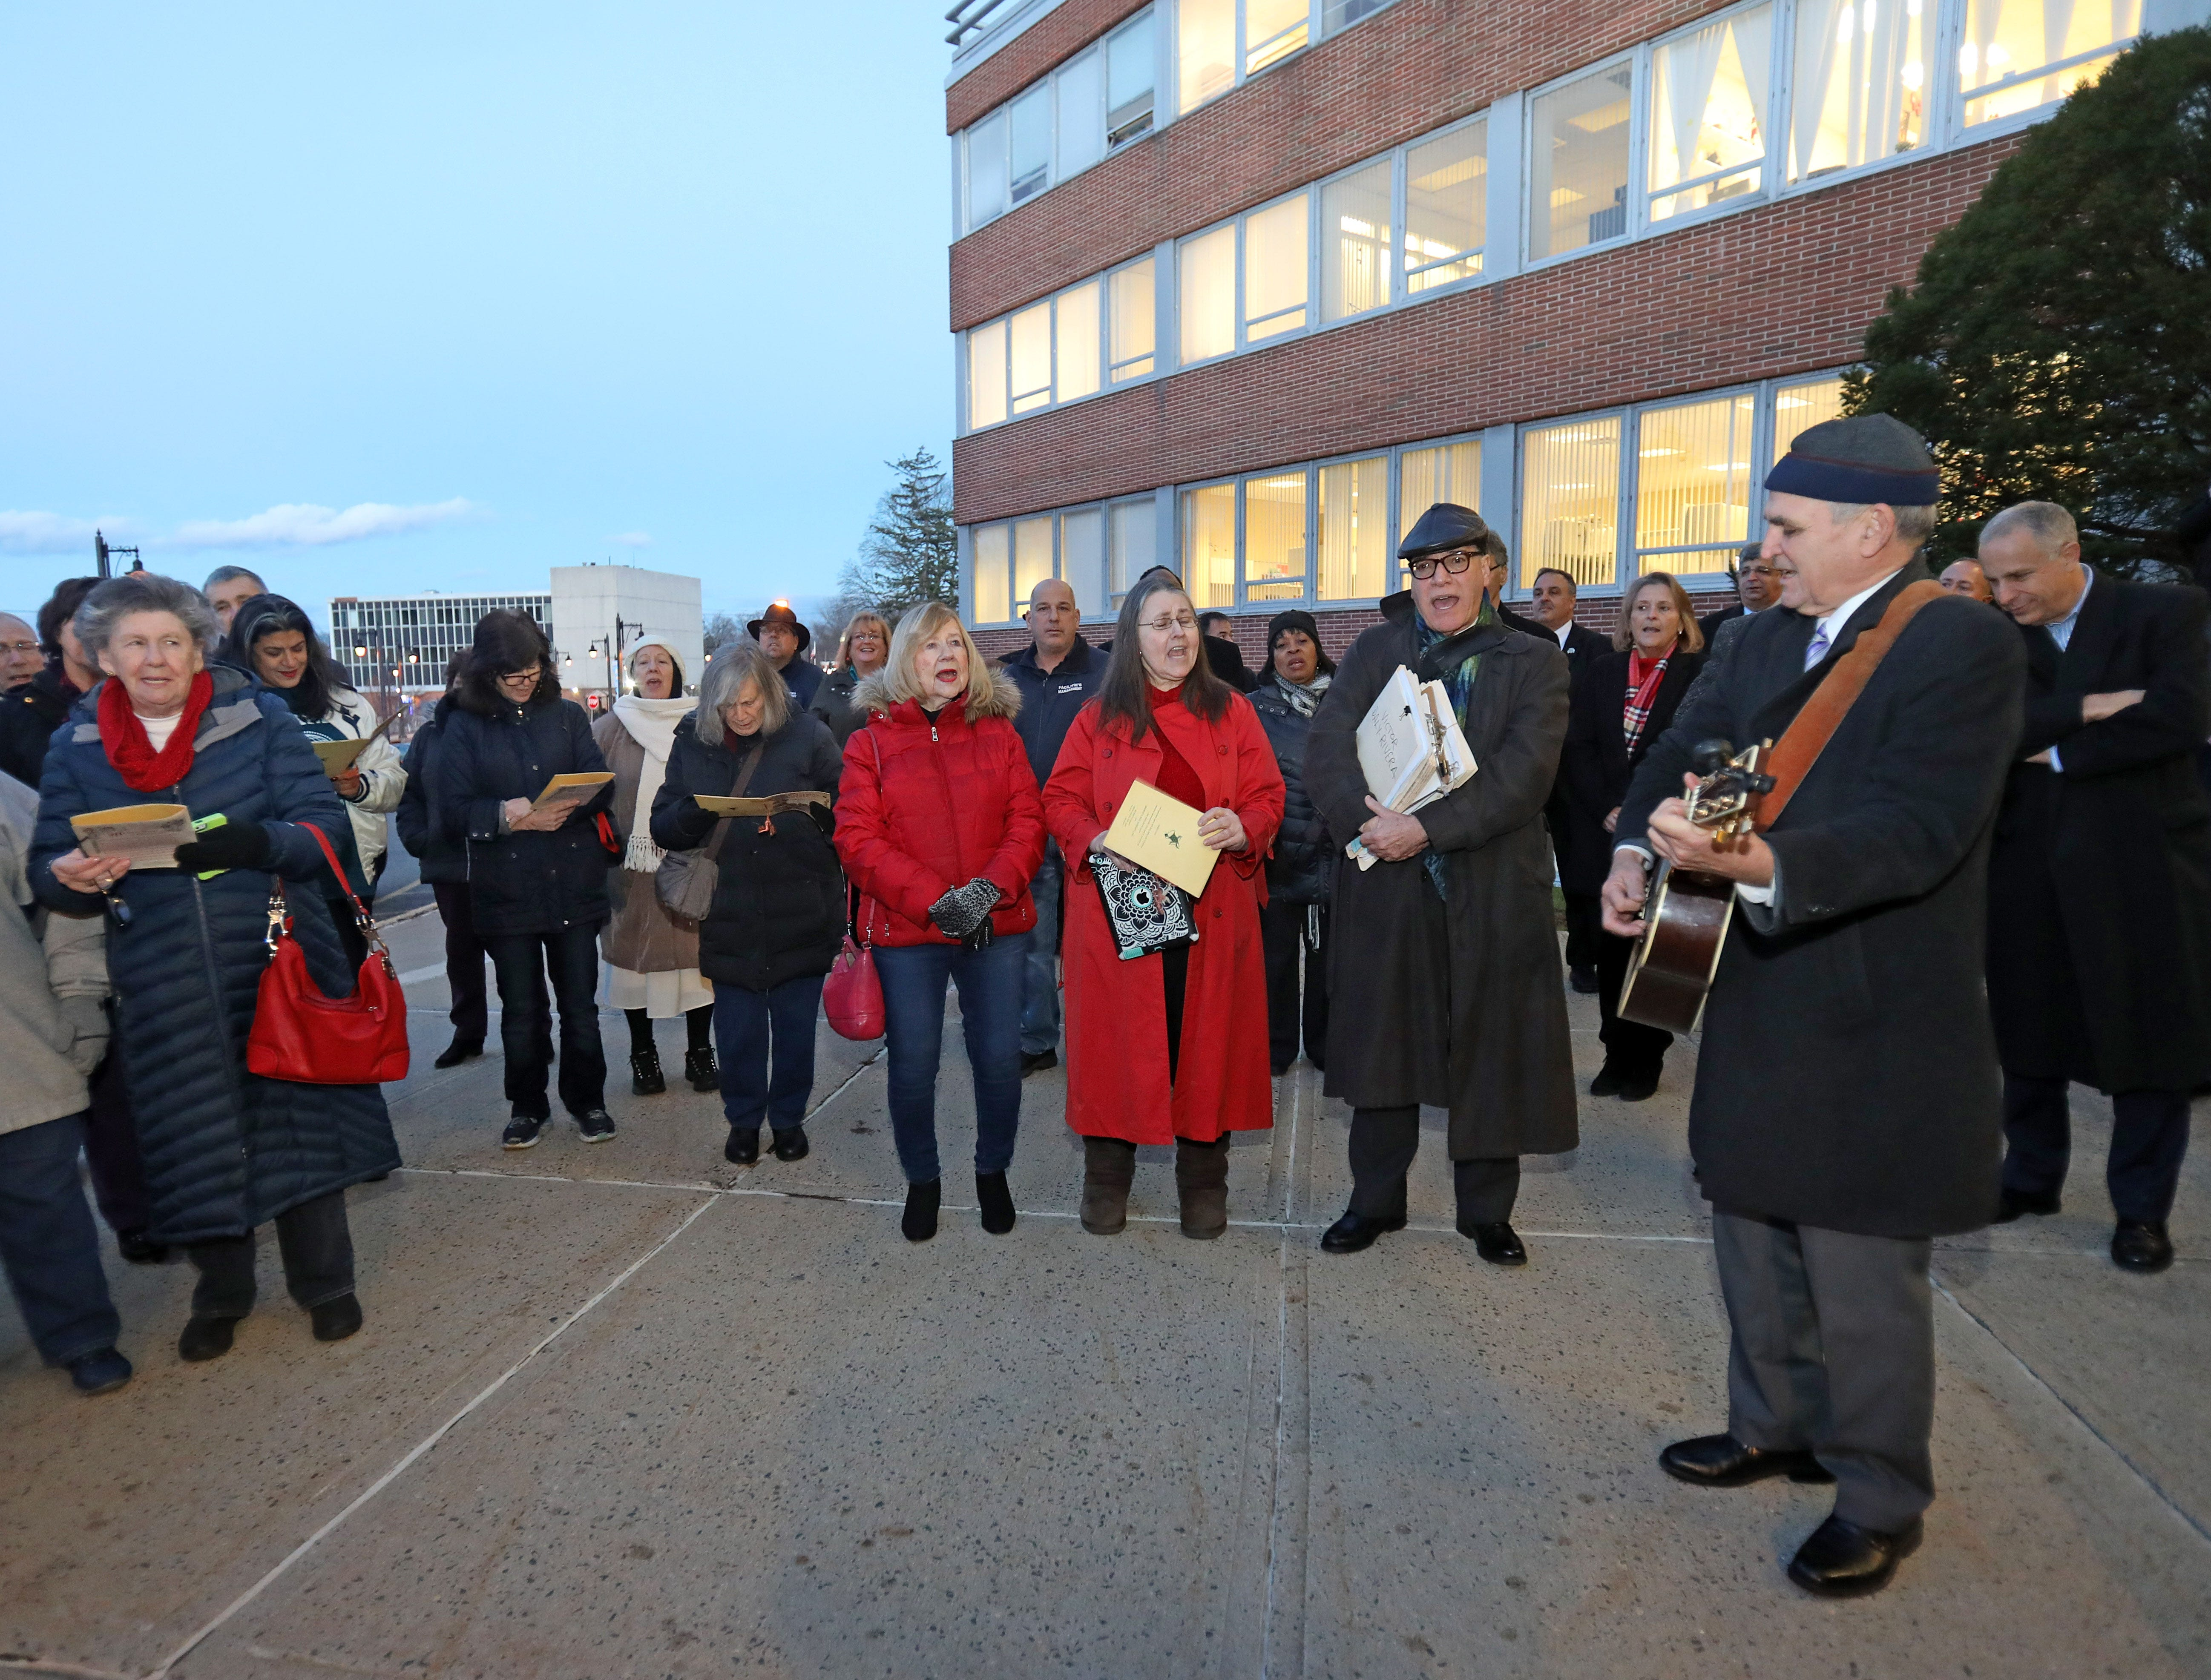 Local residents sing holiday songs during The Blessing of the Nativity Creche in front of the Rockland County Office Building in New City Dec. 3, 2018.